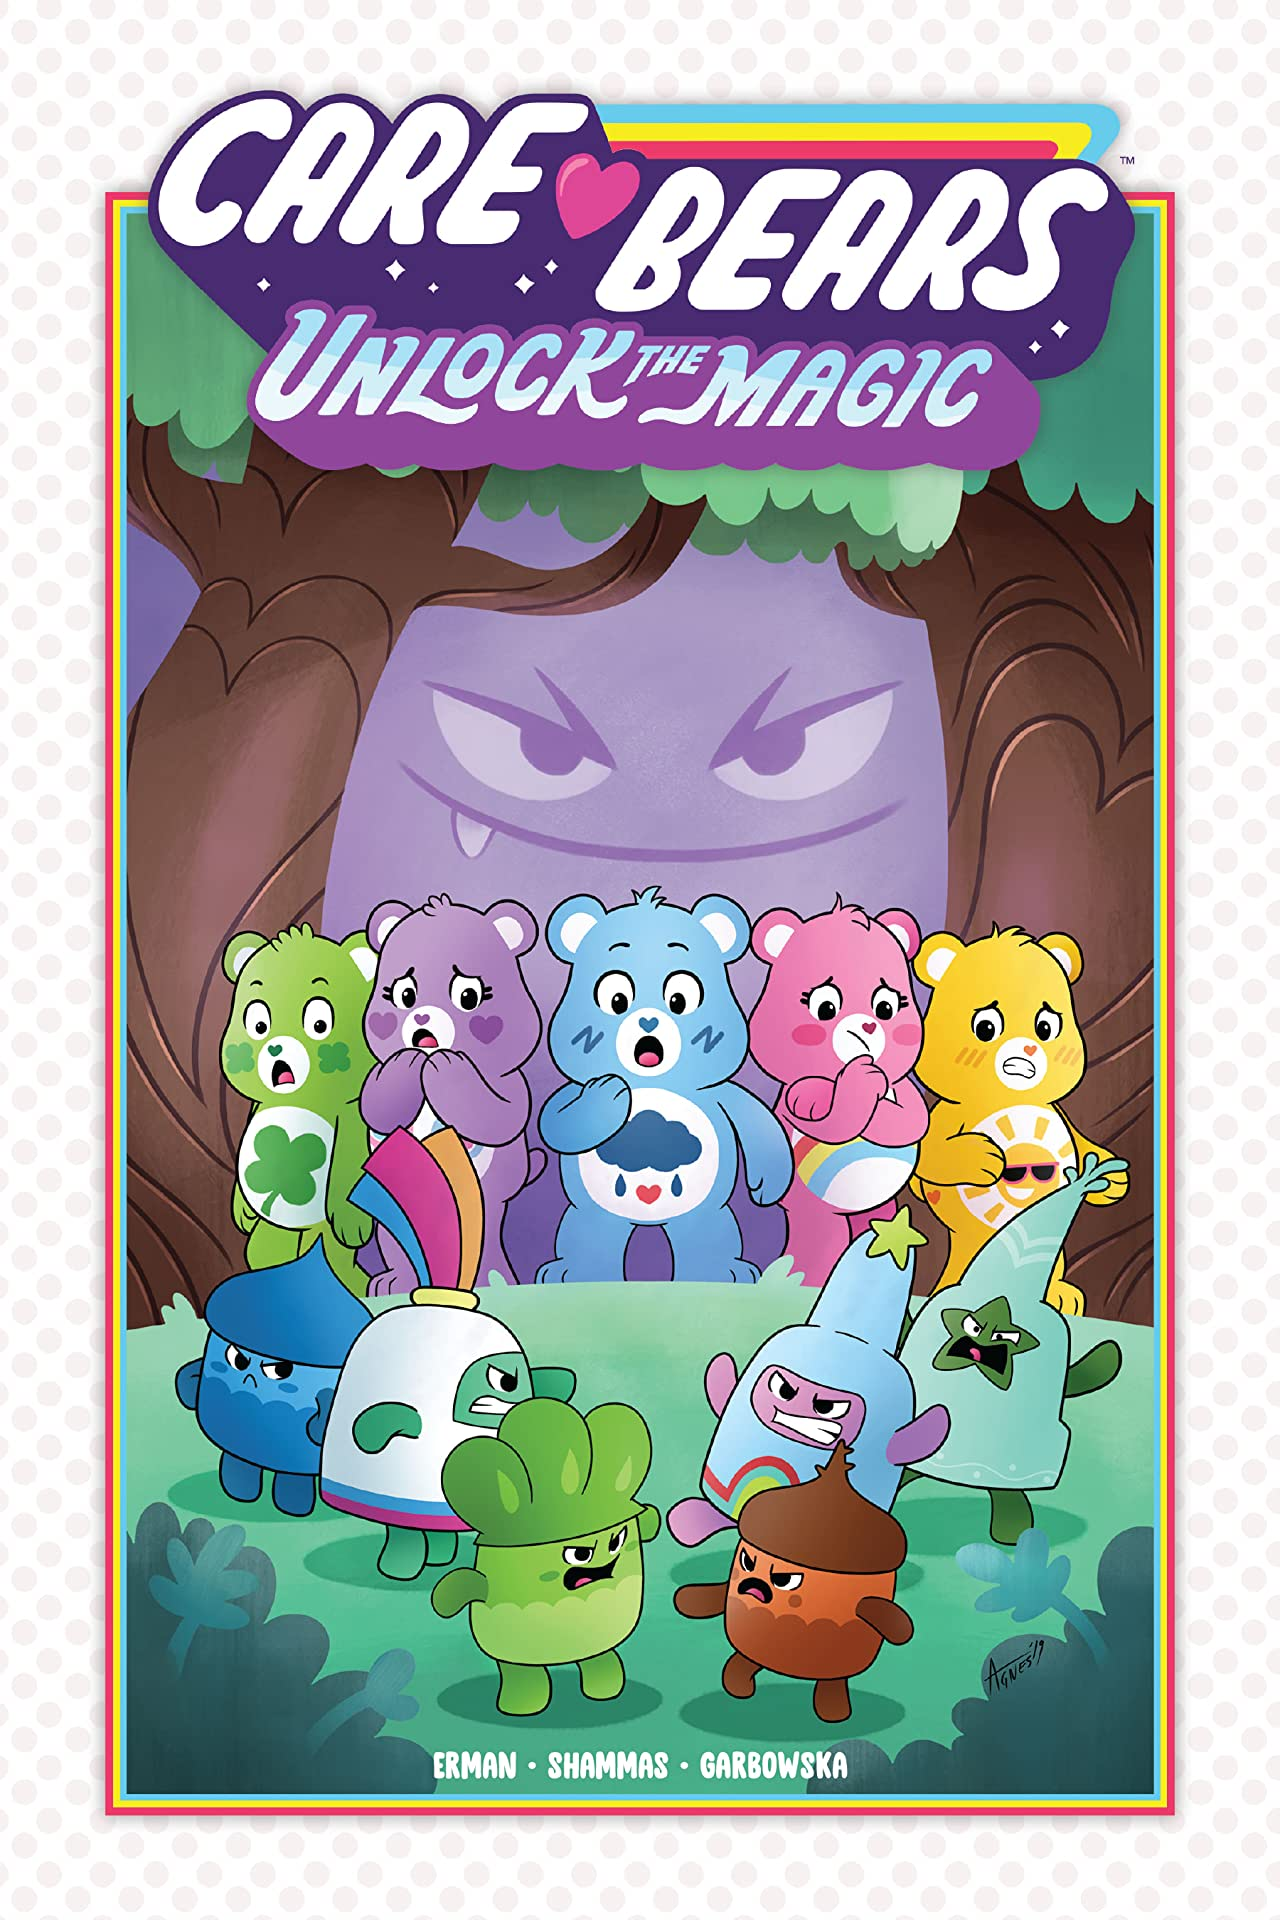 Care Bears (2019) Volume 1: Unlock the Magic